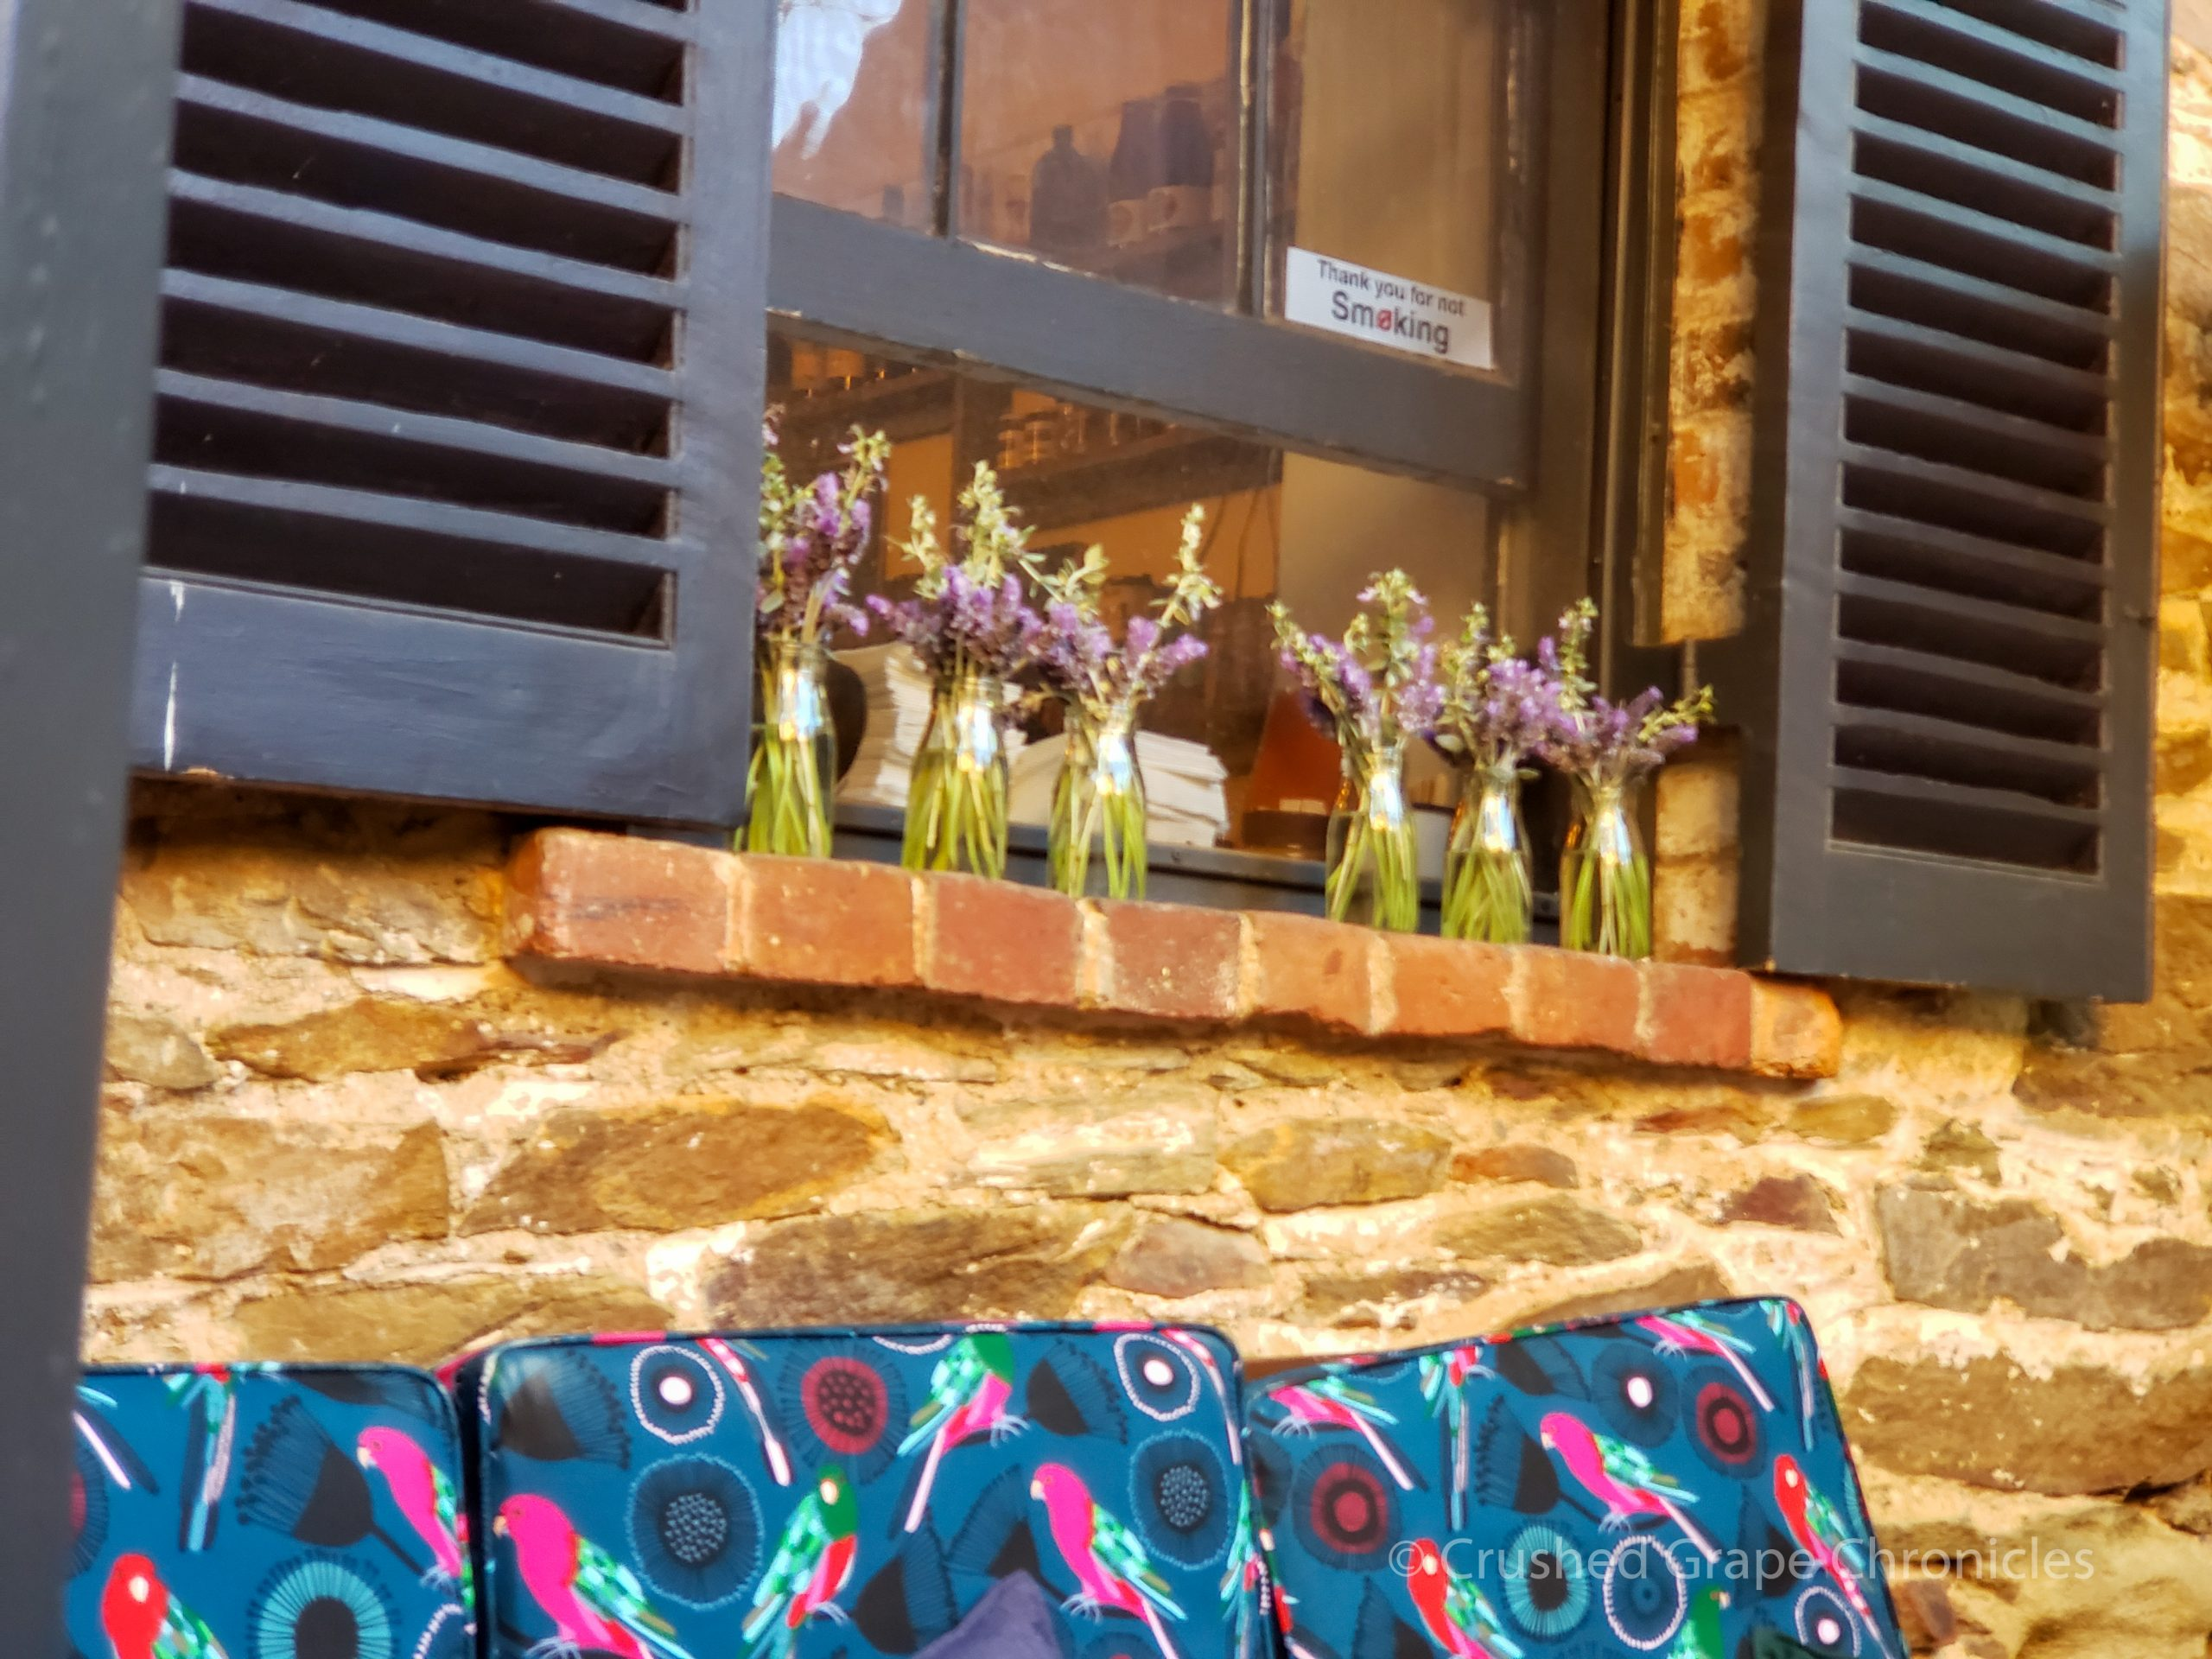 Flowers on the sill to the coffee bar Alby + Esther's Mudgee